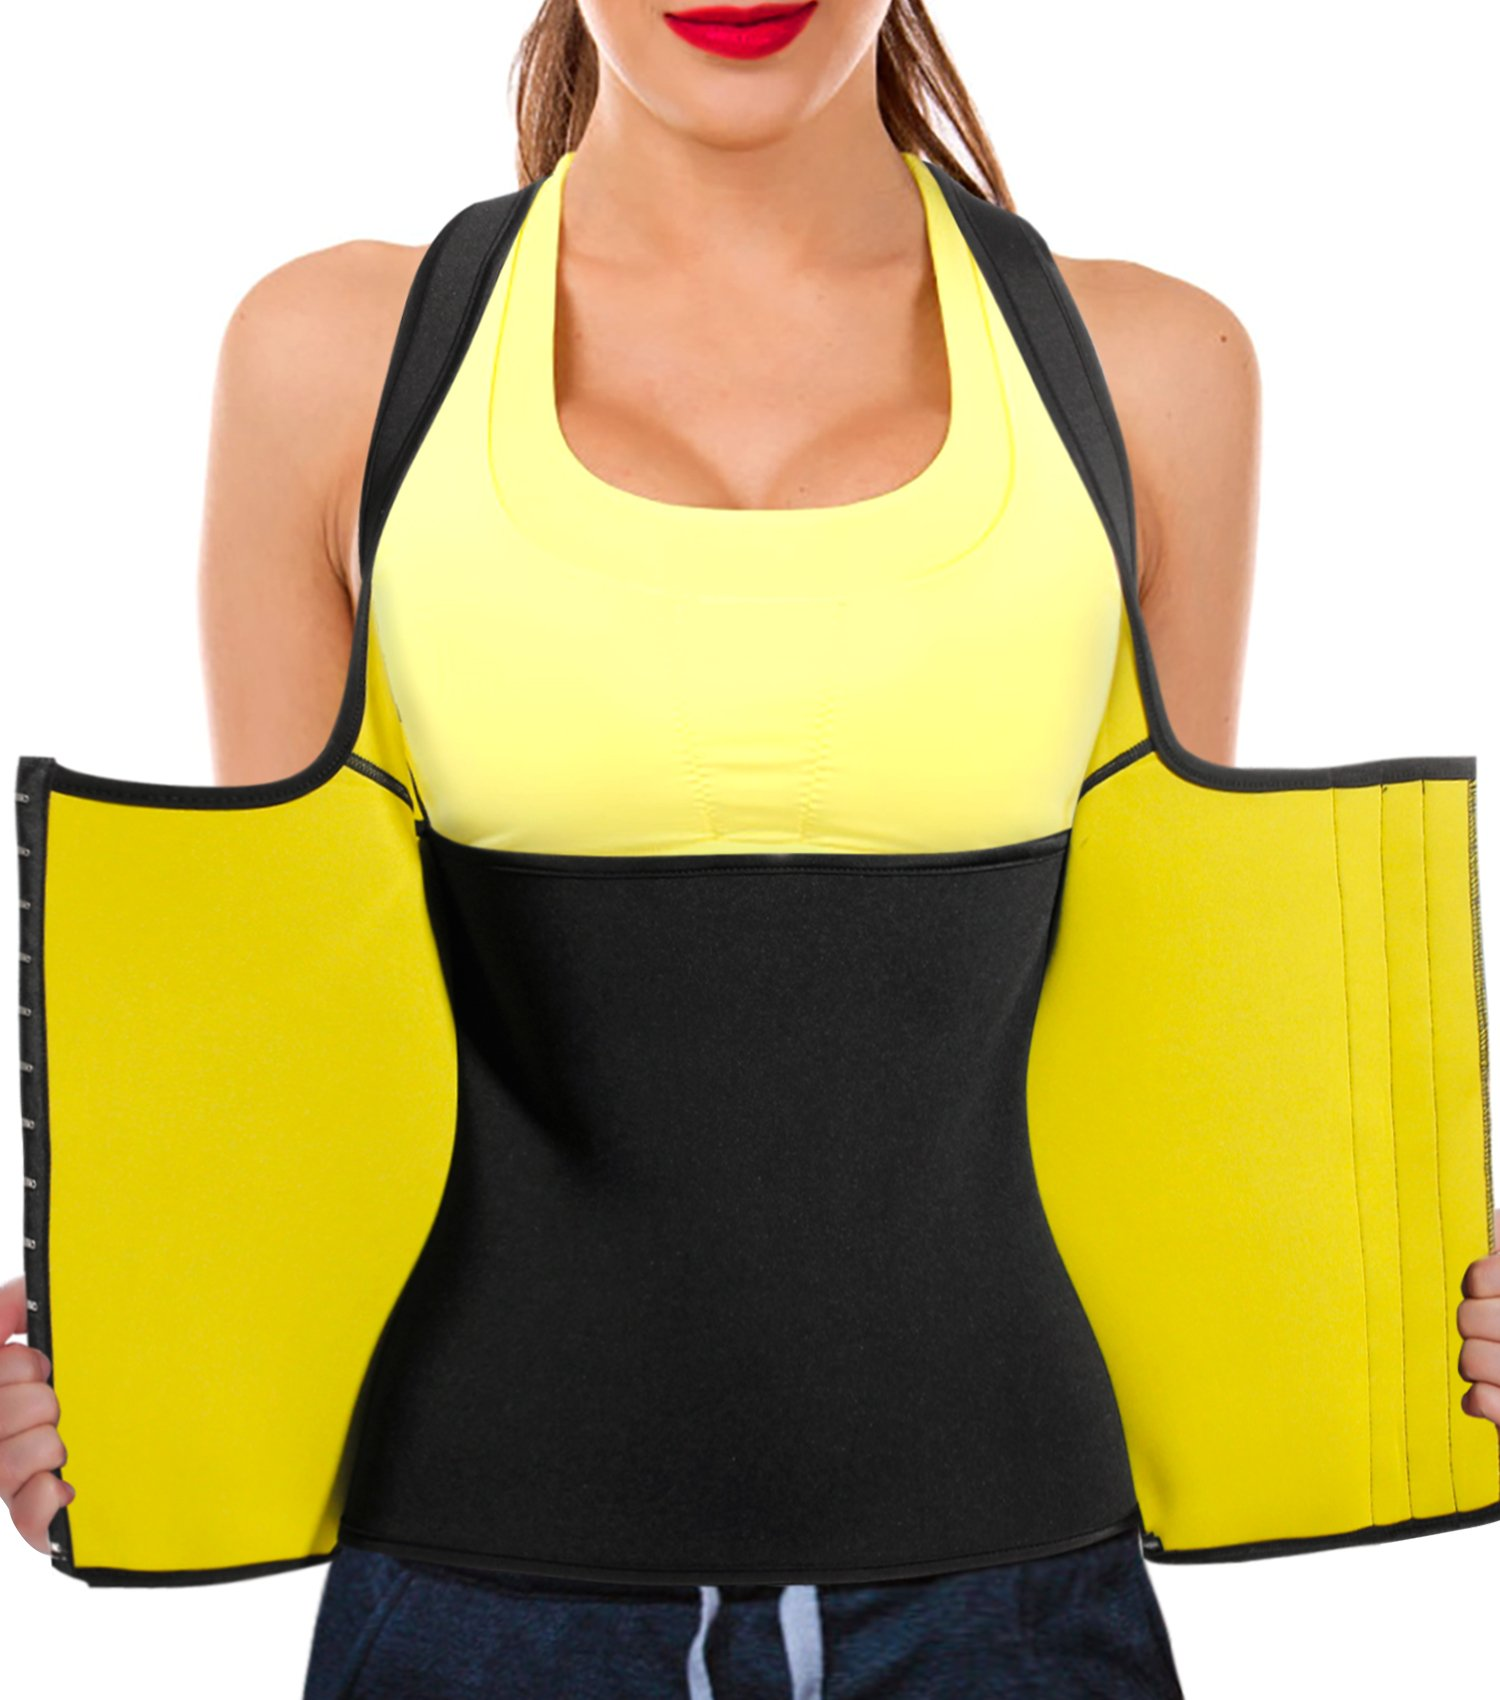 f2667825f8d Junlan Women Neoprene Waist Trainer Vest Corset Tank Top Sauna Body Shaper  Weight Loss product image